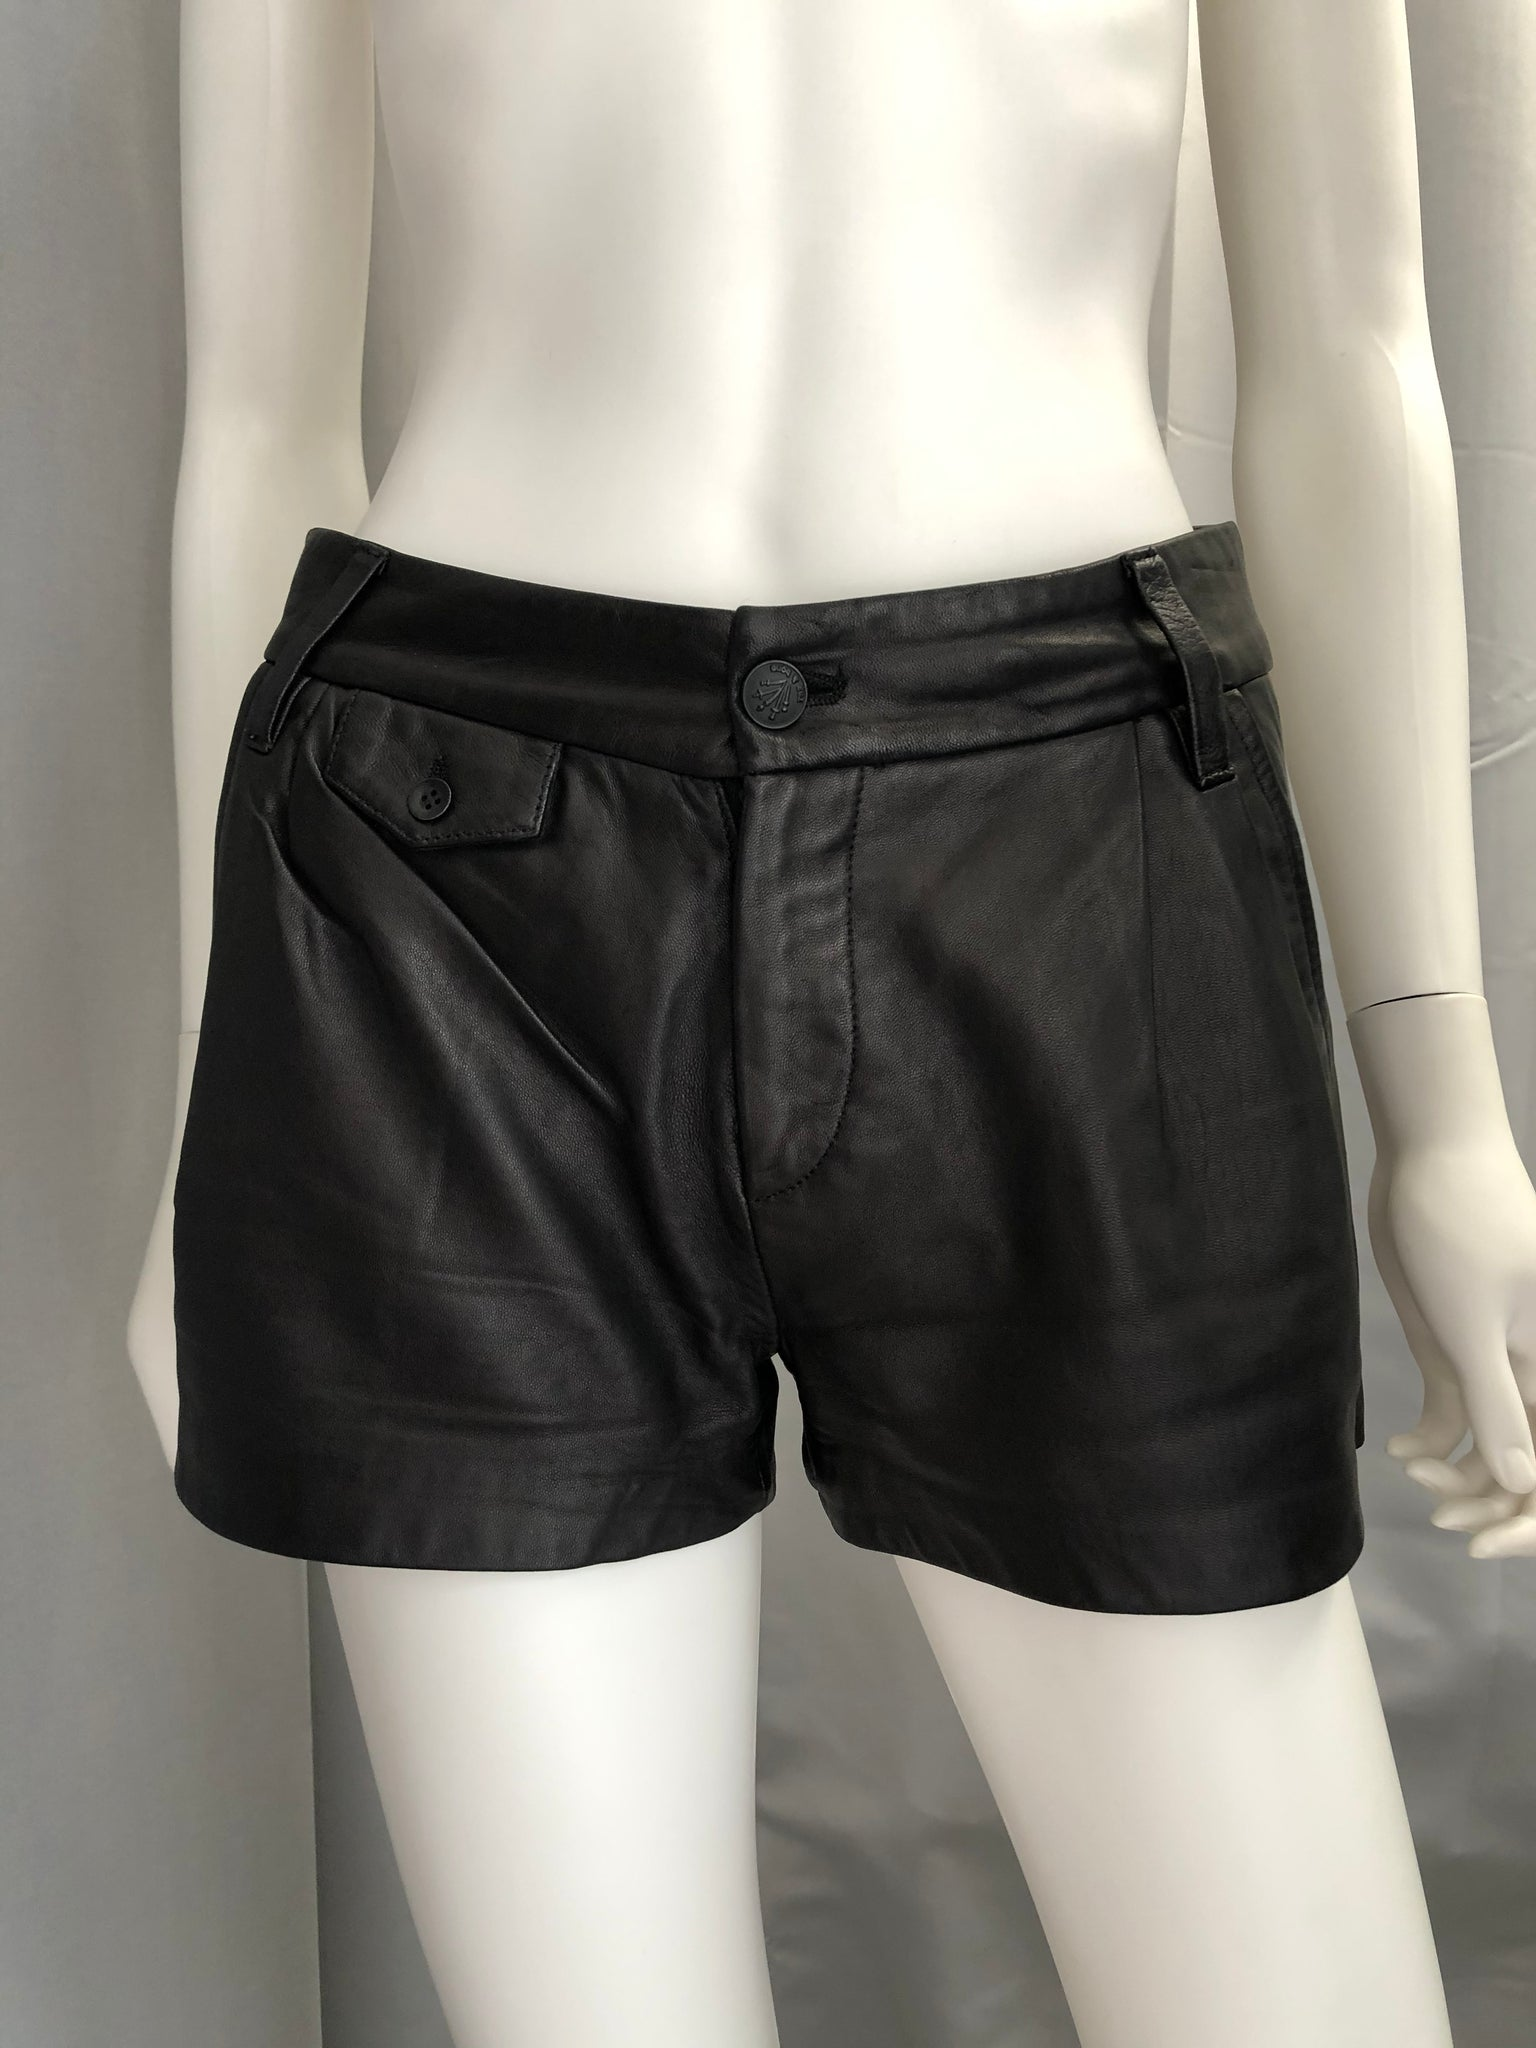 Rag & Bone Black Leather Shorts